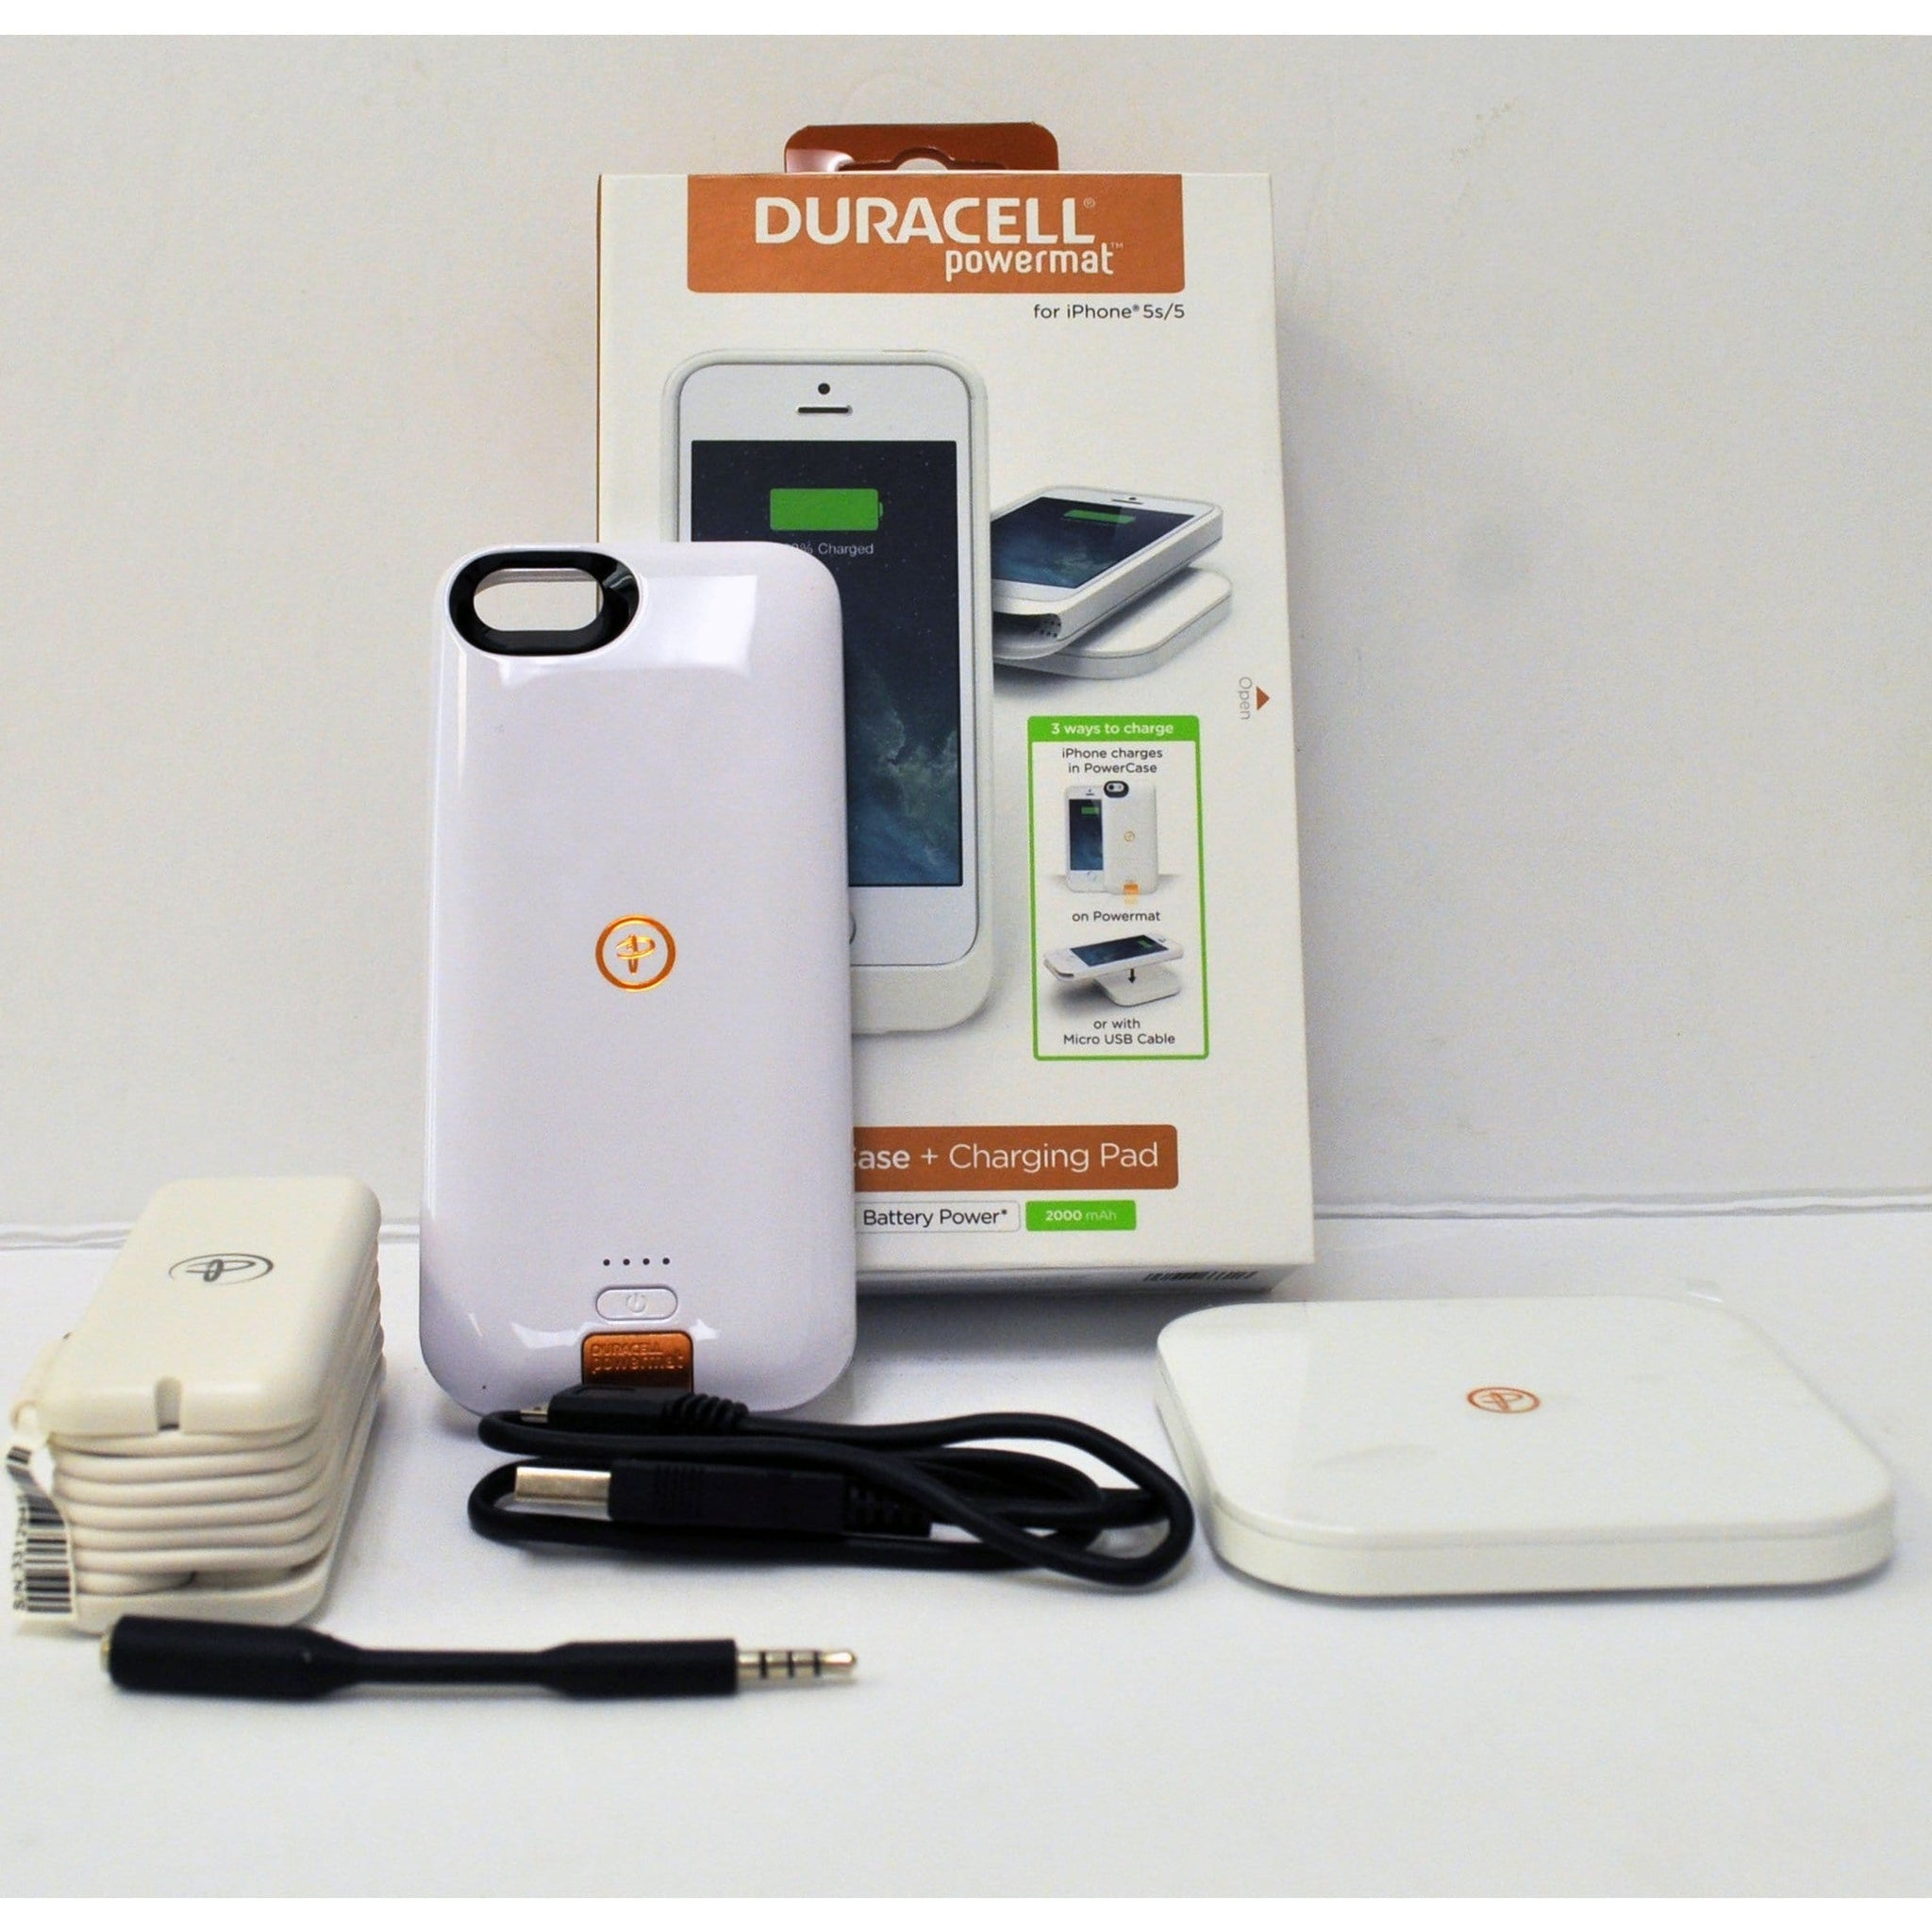 Duracell Power bank with wireless charger for iPhone